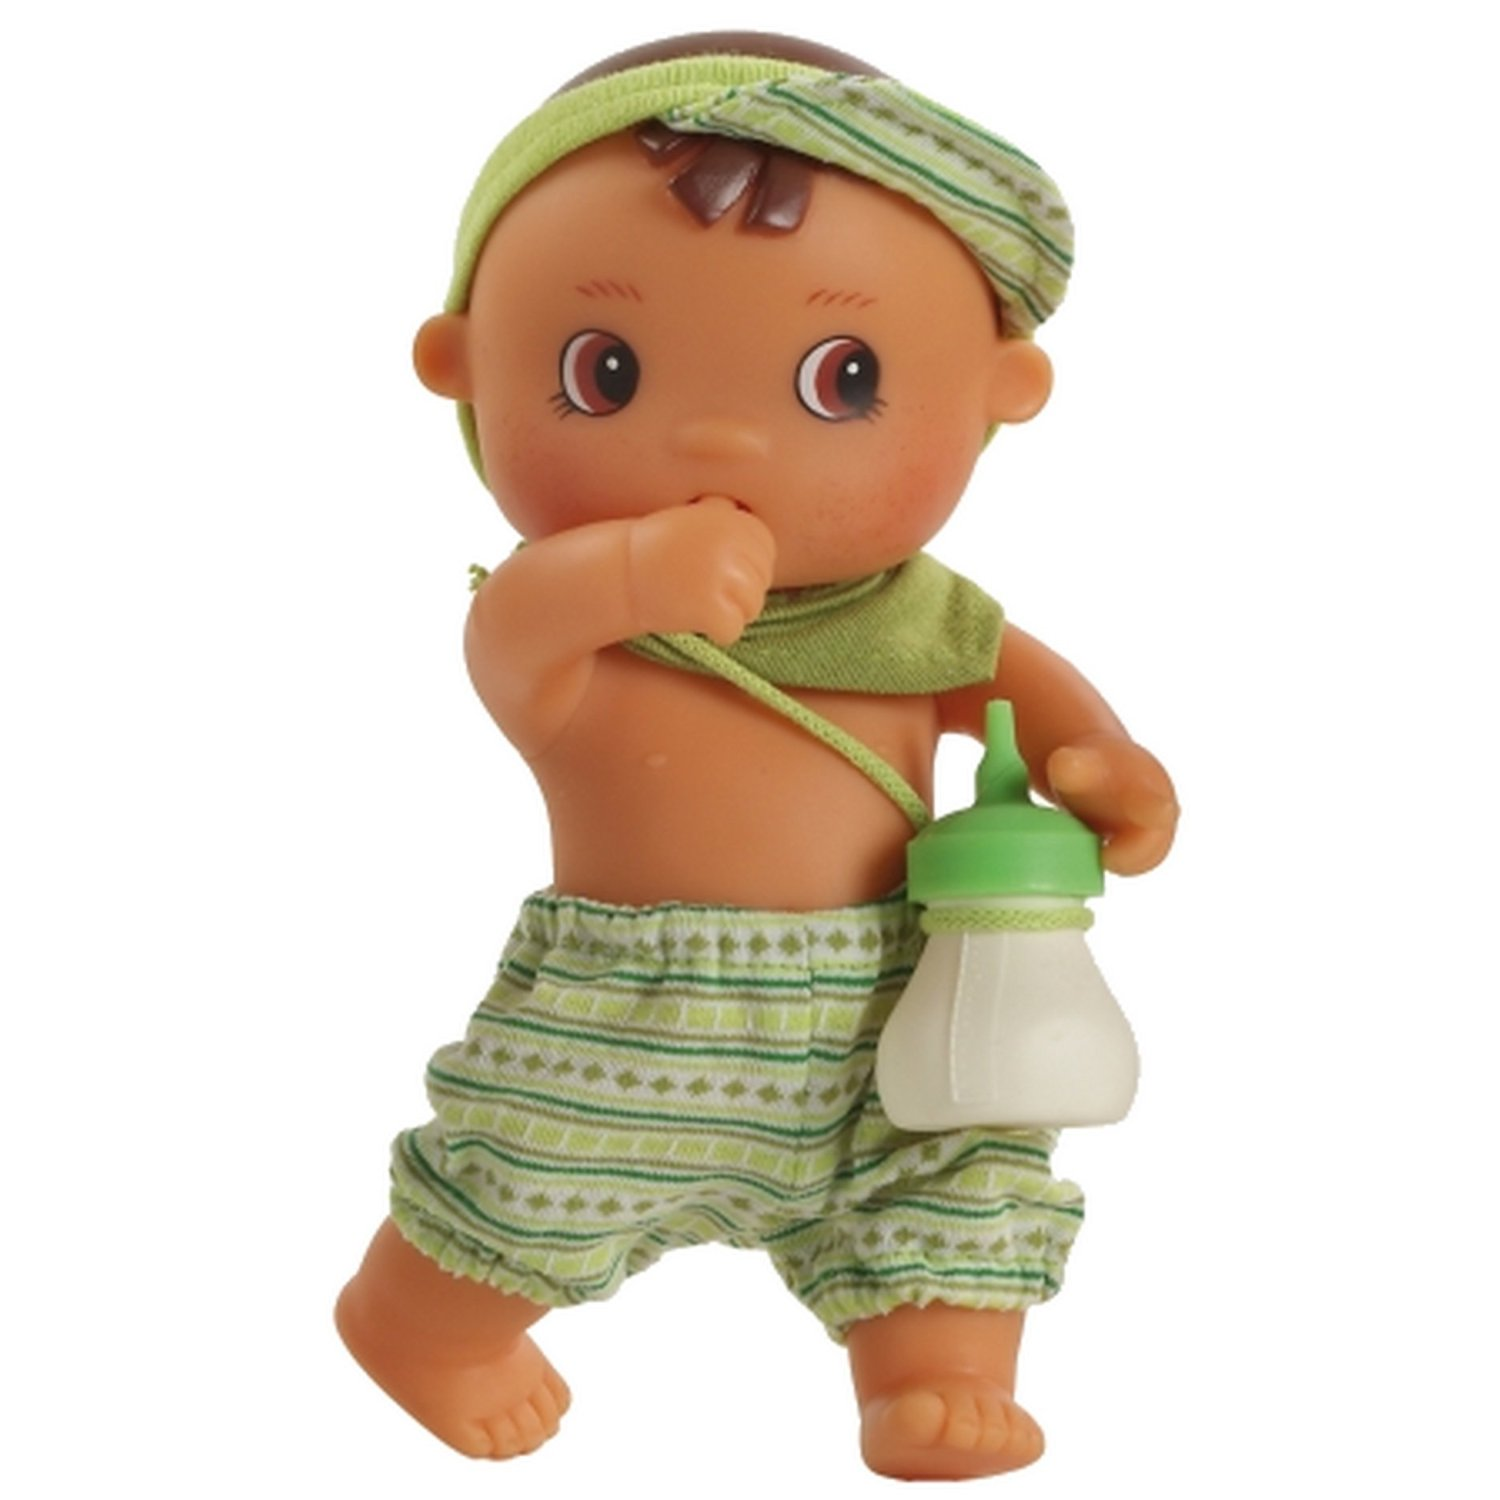 "Paola Reina Los Bebes Go Potty Enzo 8.6"" Drink & Wet Boy Doll (Made in Spain)"